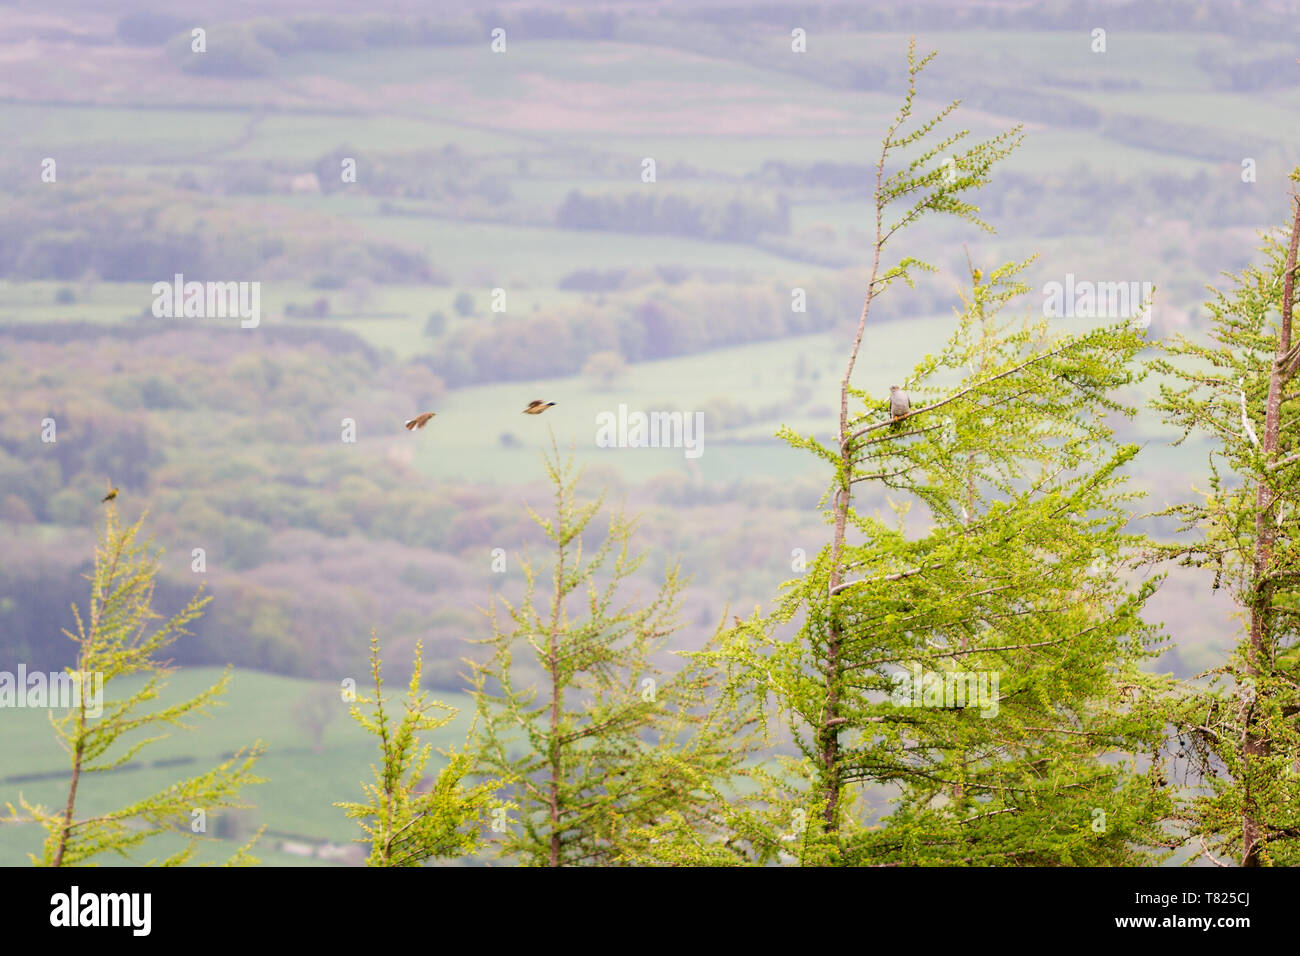 UK wildlife: Cuckoo perched in a tree top being mobbed by lots of birds including meadow pipits and a siskin - Stock Image